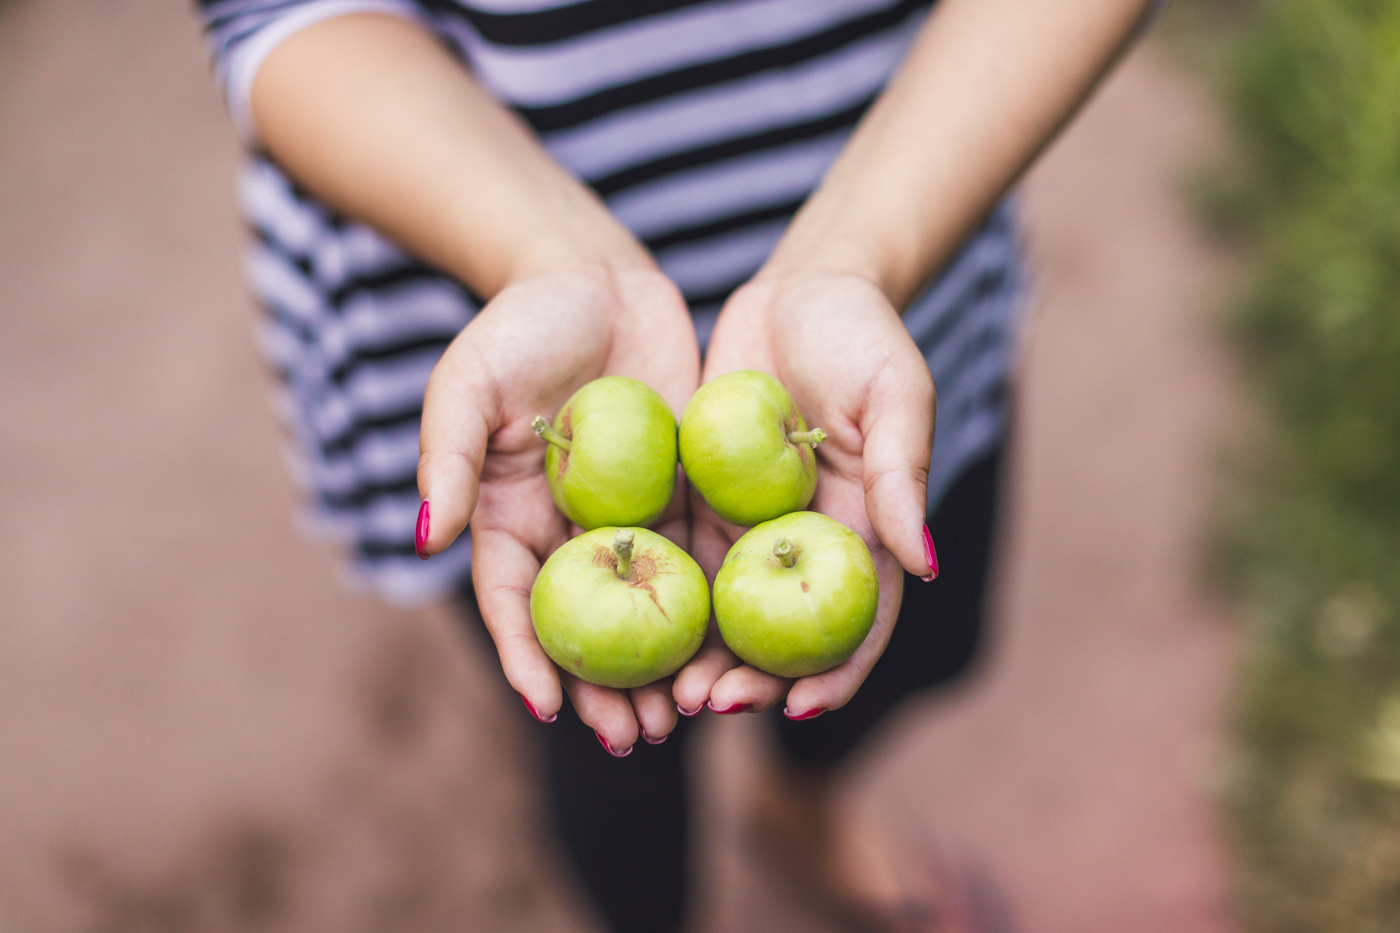 ruby-holding-apples